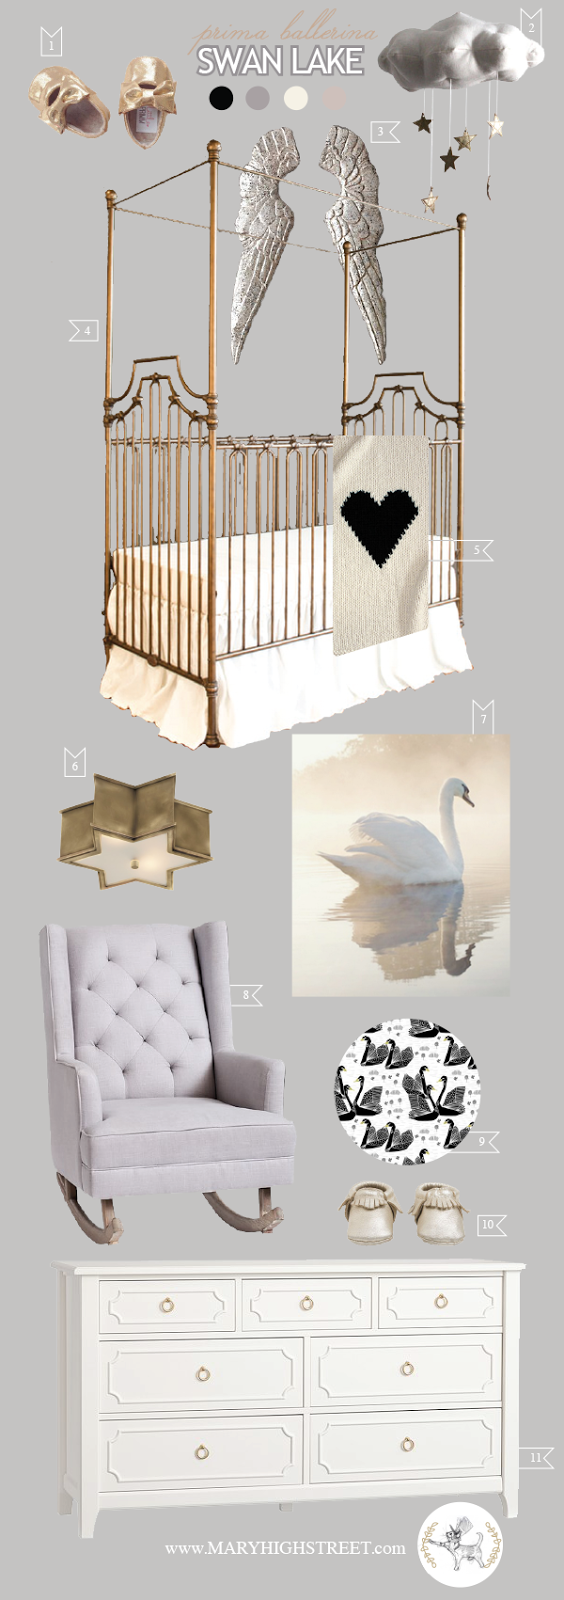 Swan Lake || on California Peach || Nursery Baby Room Interior Design Style Board